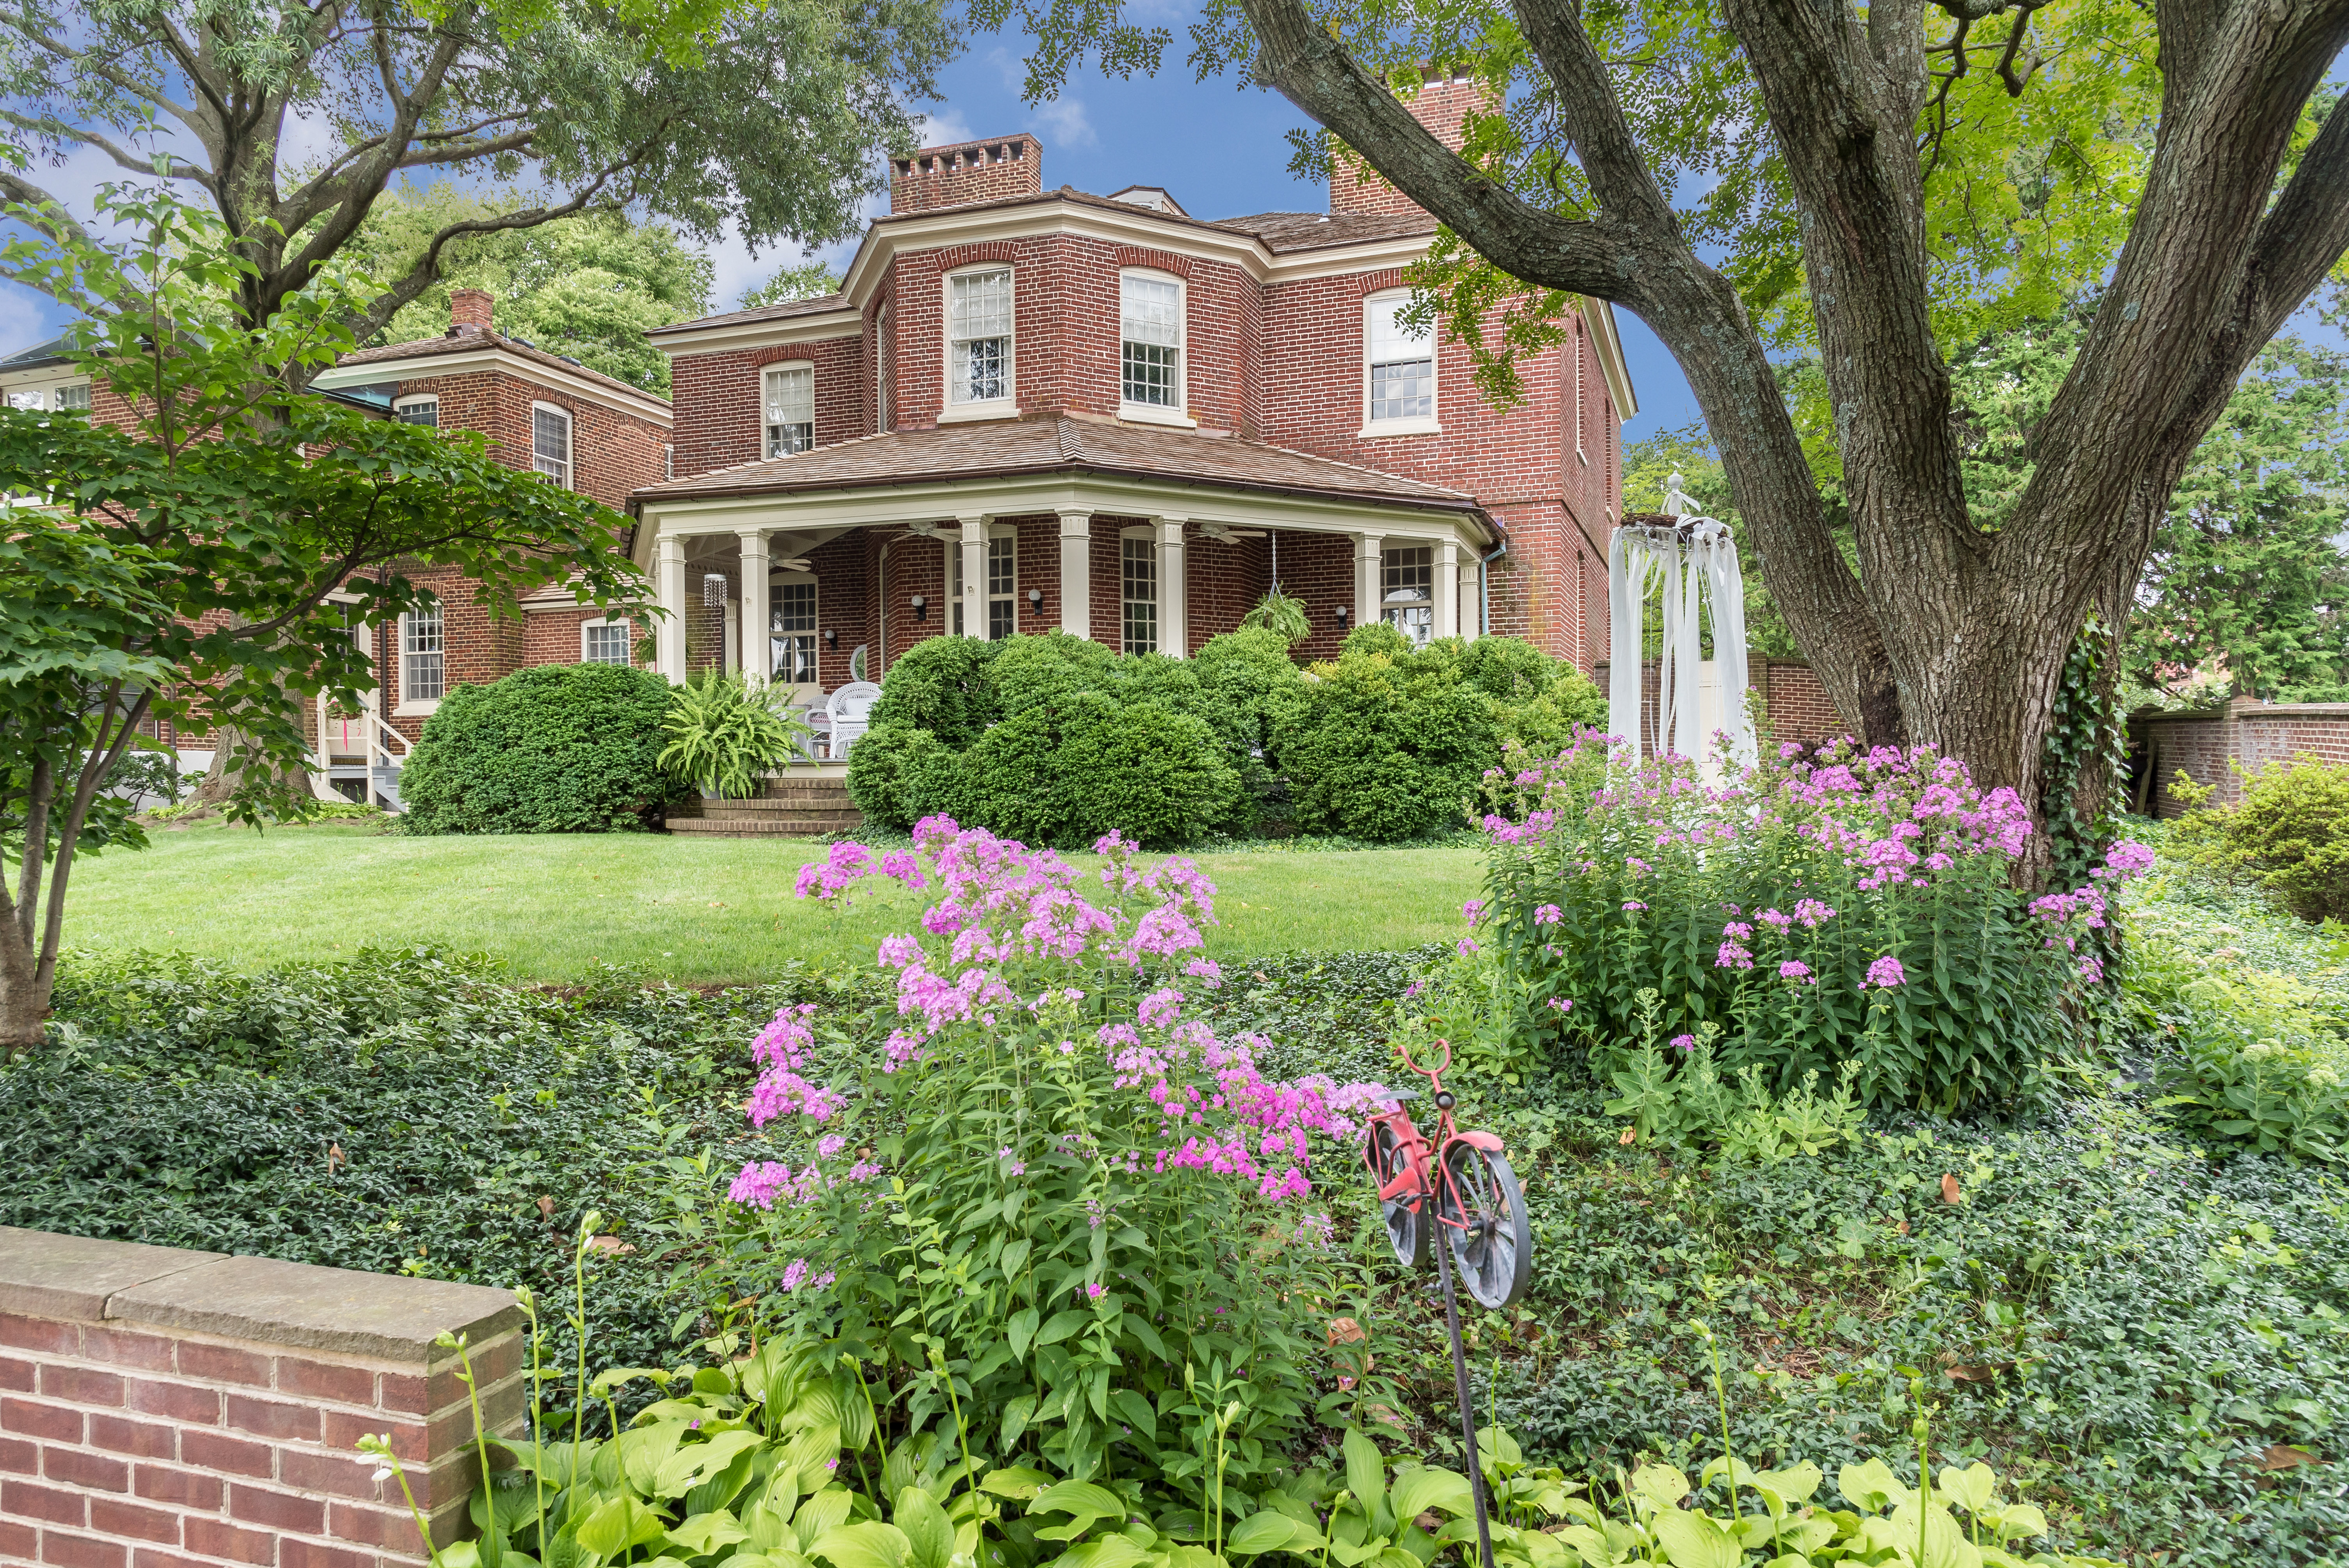 Maryland House And Garden Pilgrimage Anne Arundel County Tour